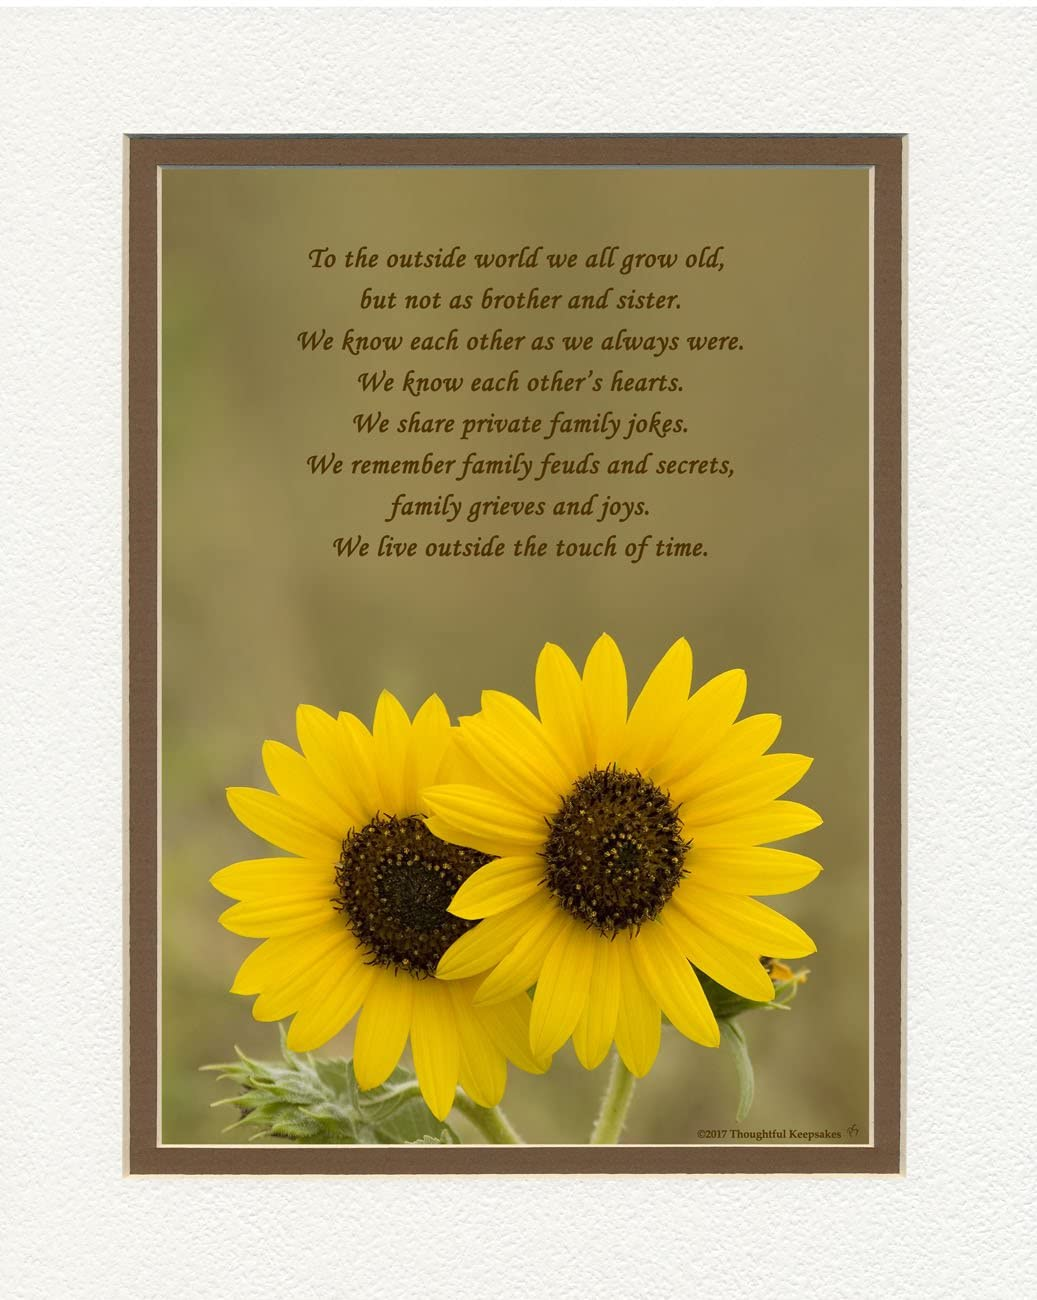 Sister Gift from Brother with As Sister and Brother, We Live Outside The Touch of Time Poem. Two Sunflowers Photo, 8x10 Double Matted for Sisters for Christmas, Birthday.